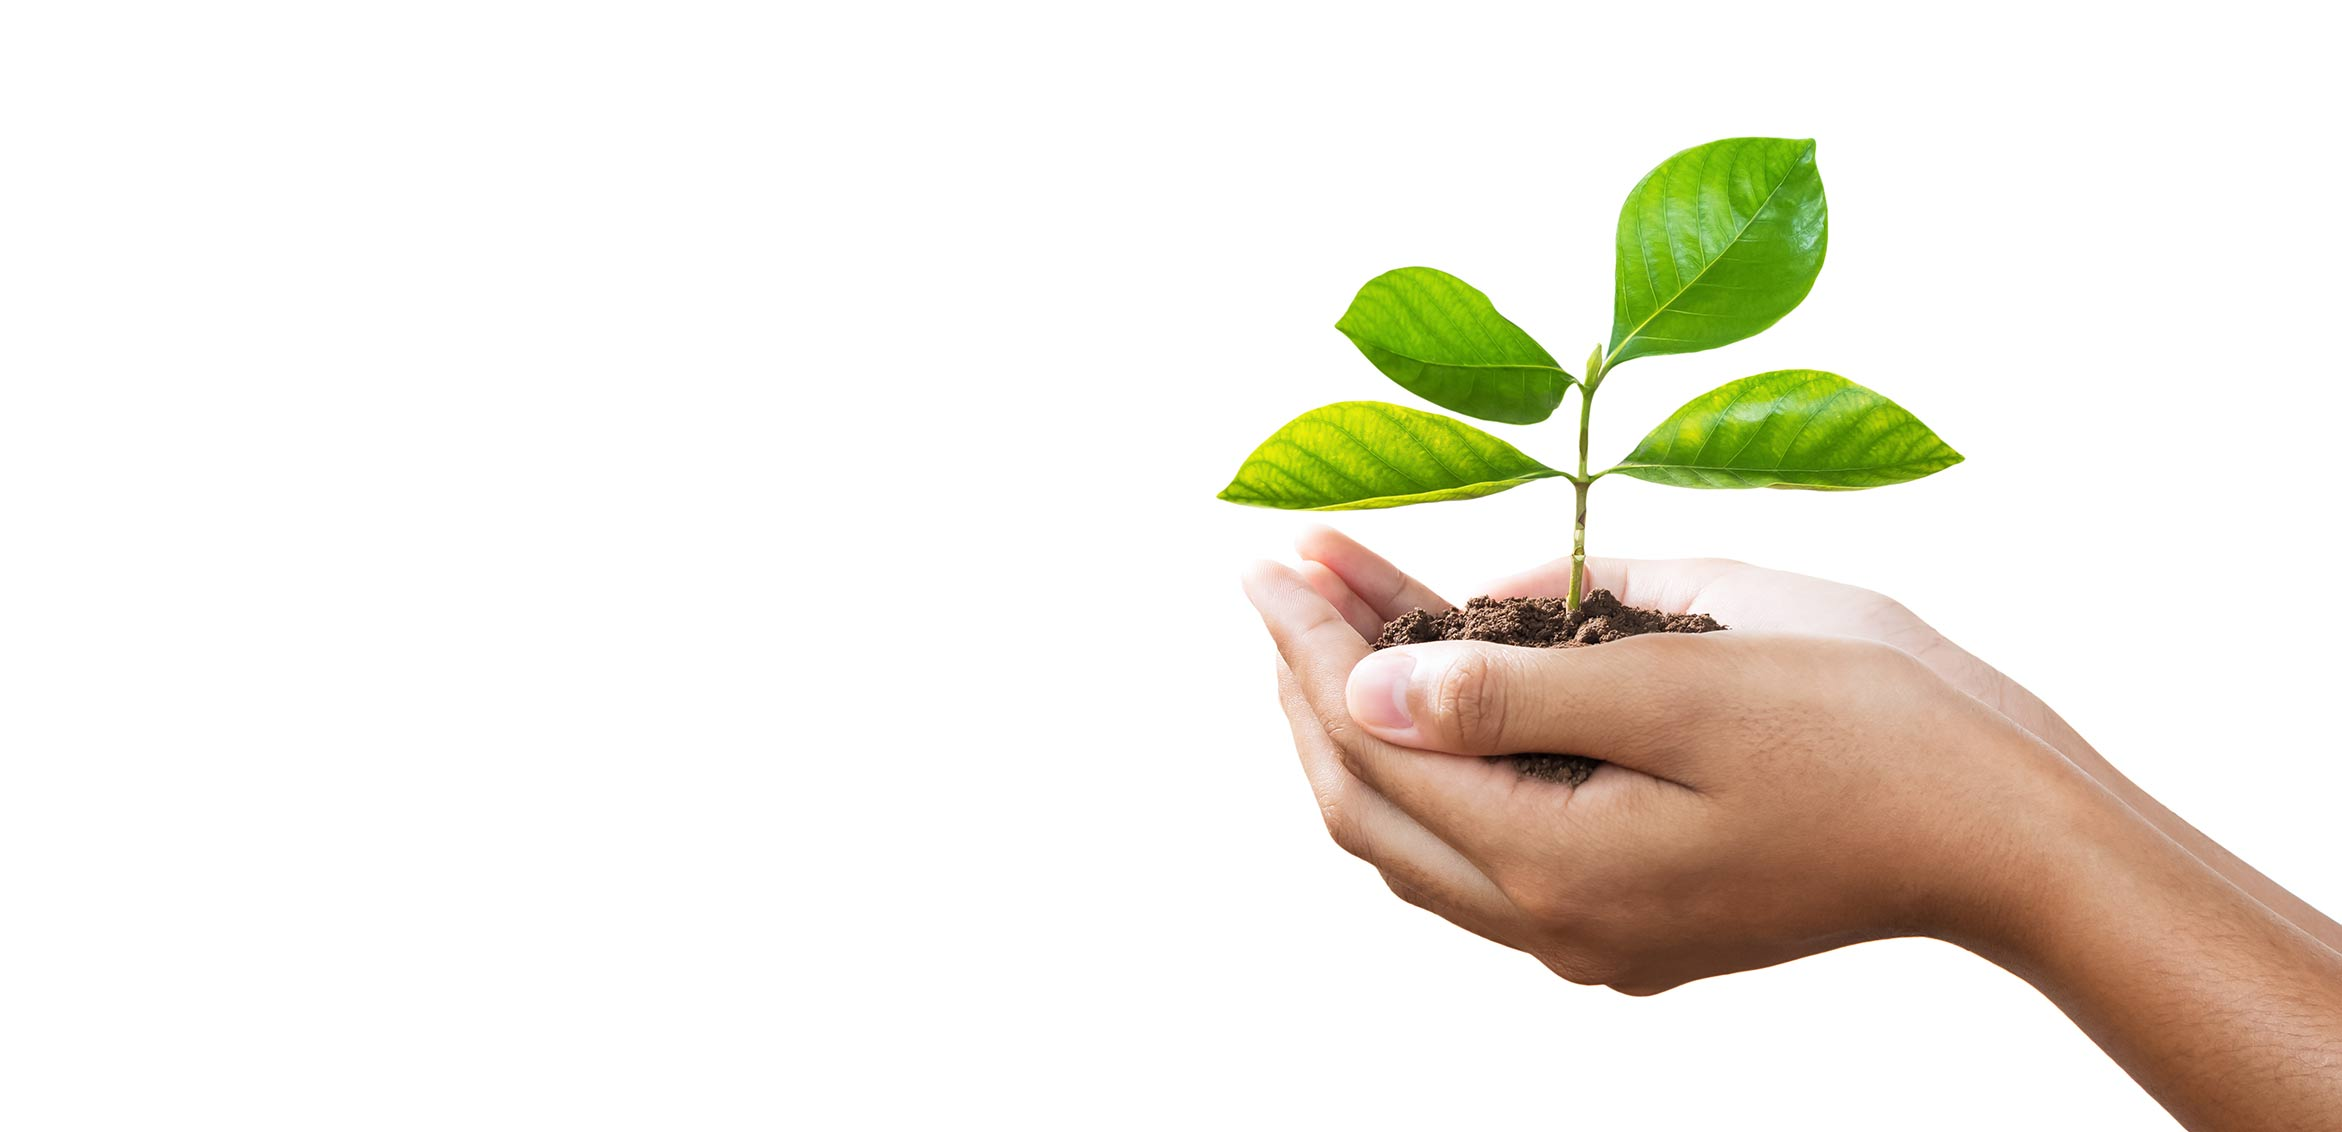 Photo of person holding growing plant